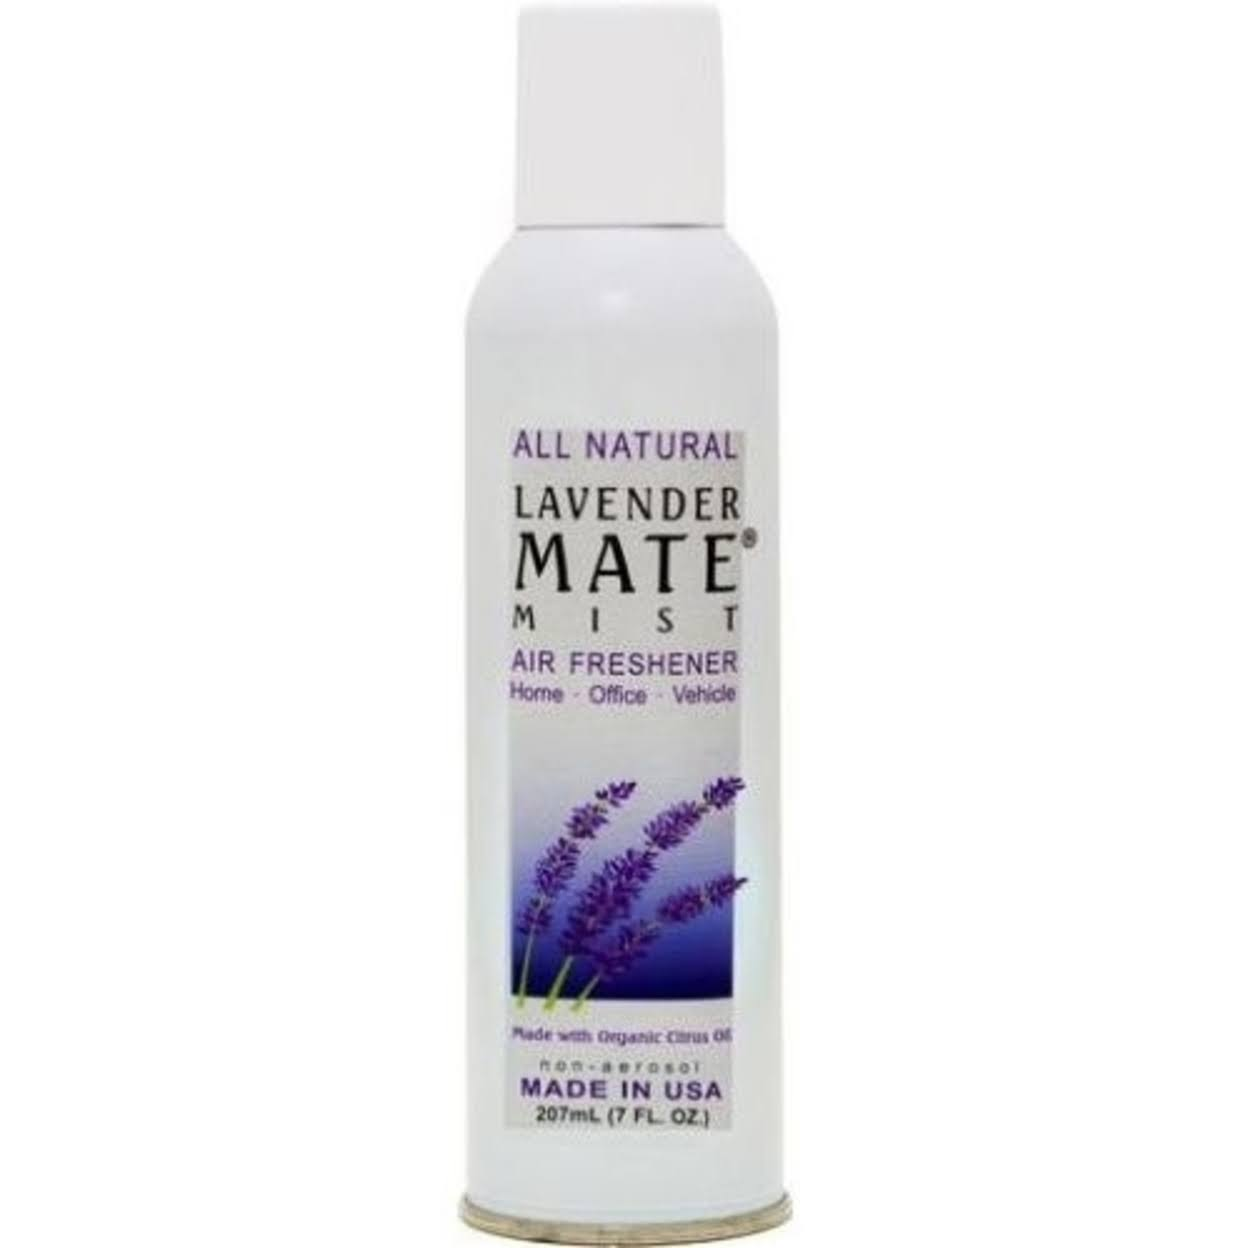 Citrus Mate Air Freshener Spray - Lavender, 7oz